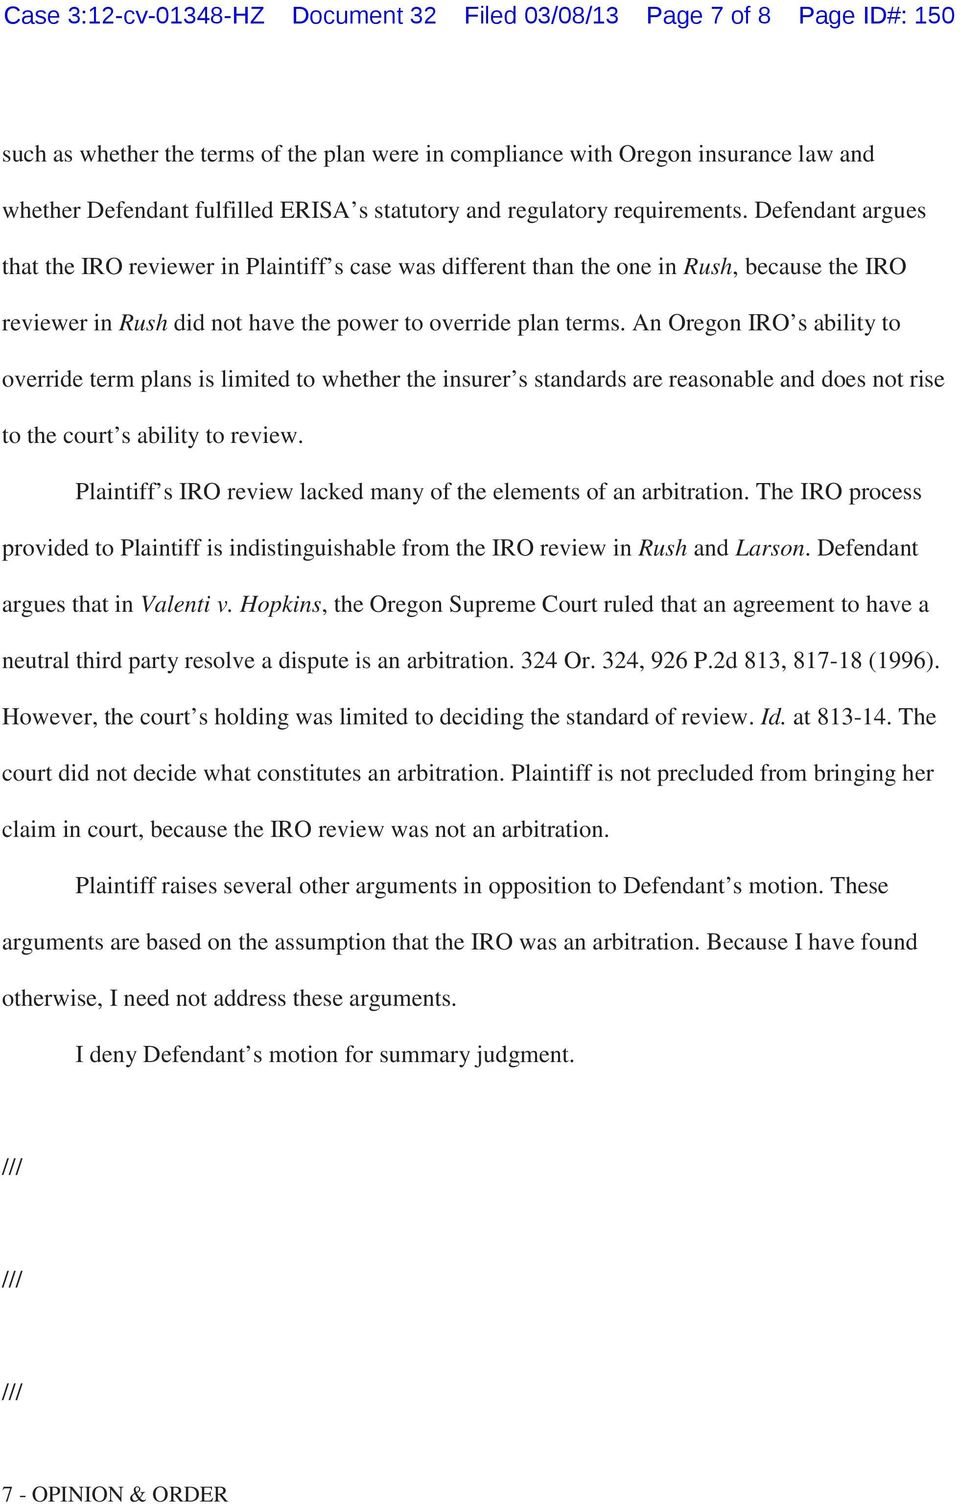 Defendant argues that the IRO reviewer in Plaintiff s case was different than the one in Rush, because the IRO reviewer in Rush did not have the power to override plan terms.